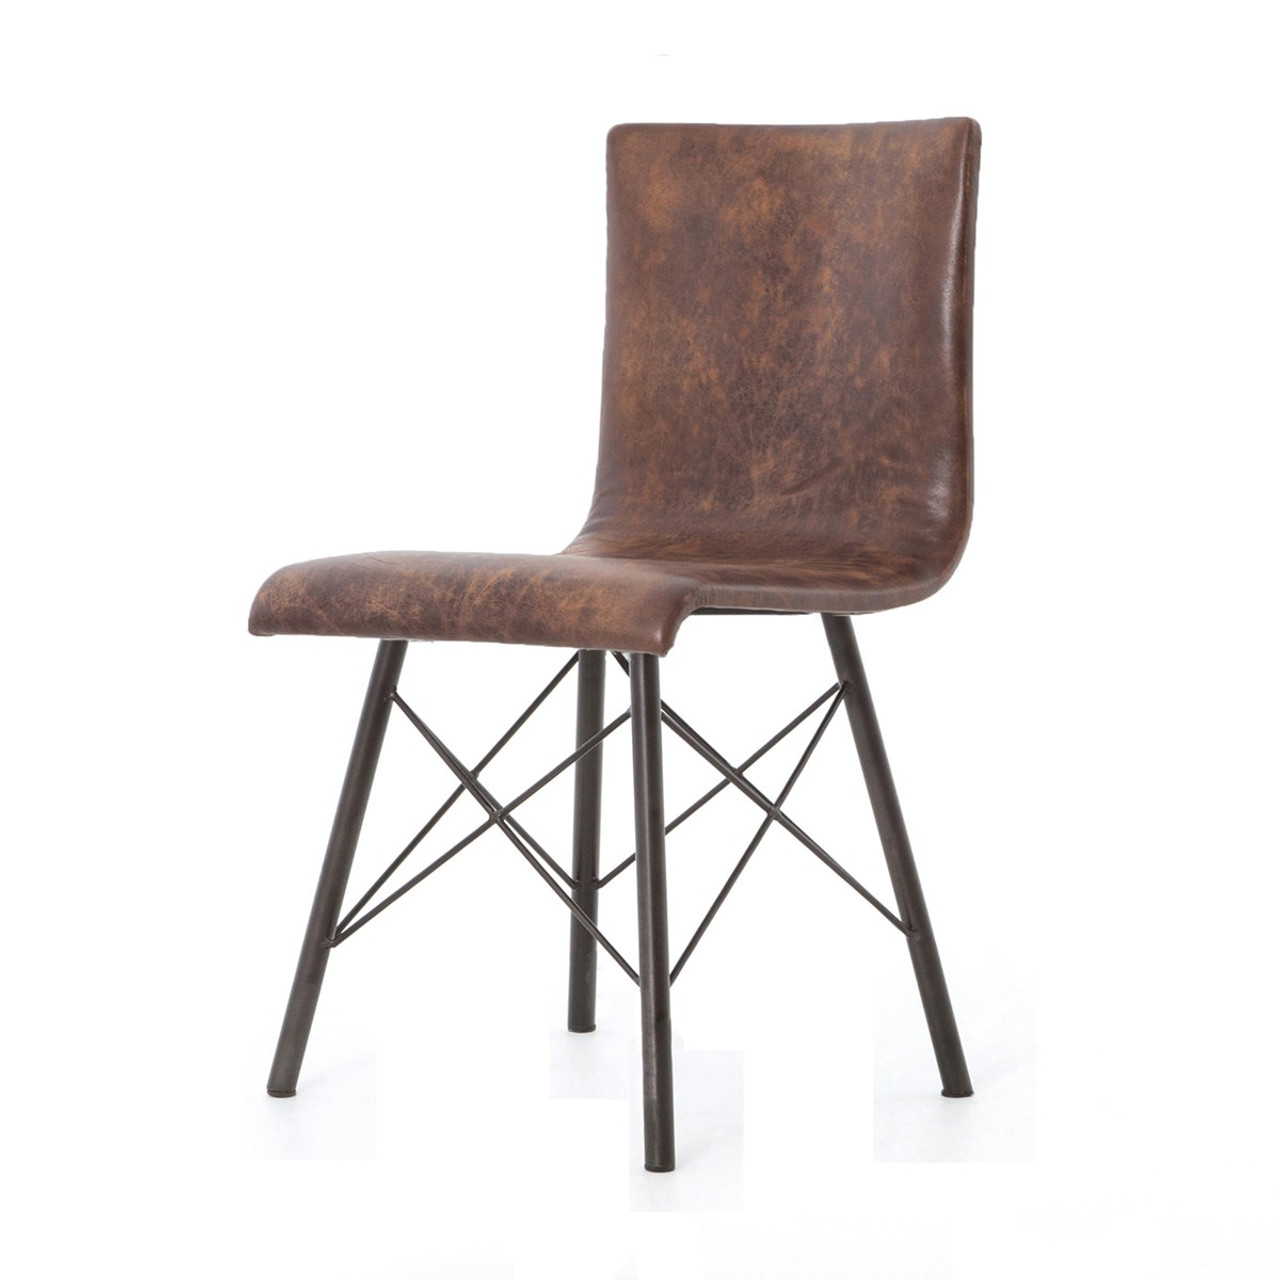 Terrific Diaw Distressed Brown Leather Dining Chair Pabps2019 Chair Design Images Pabps2019Com